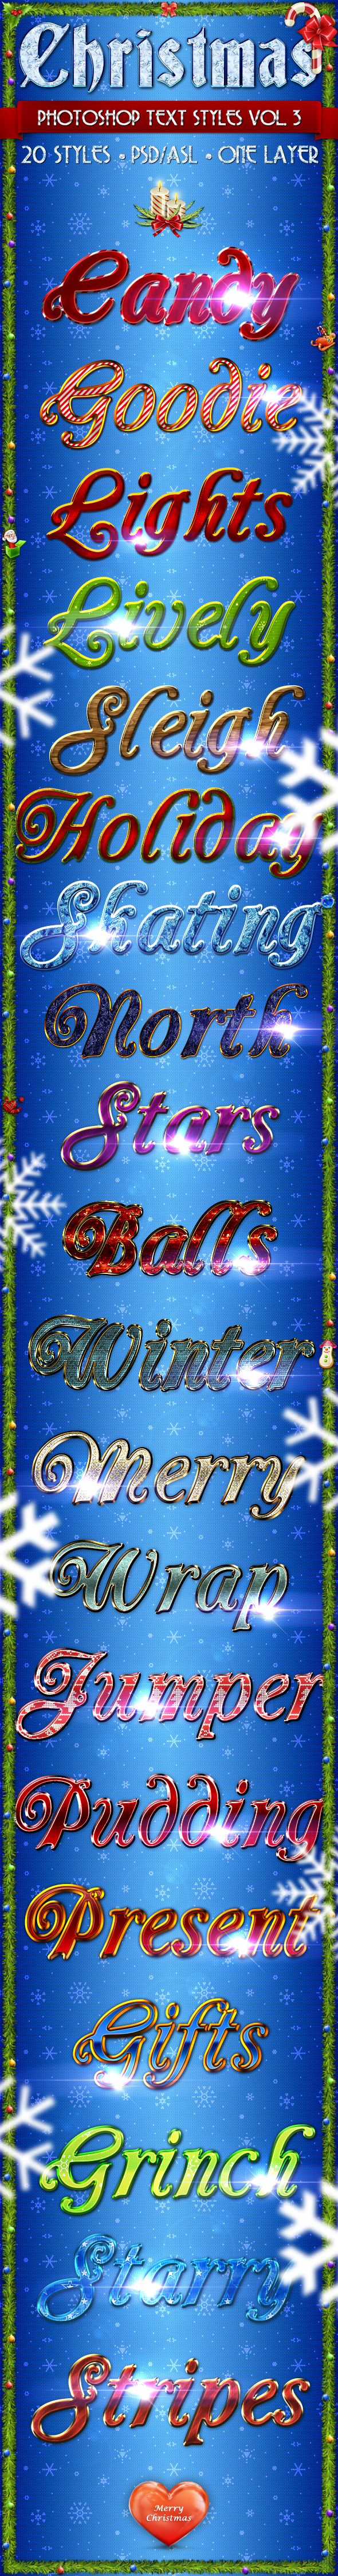 Christmas Vol. 3 - Text Styles - Text Effects Styles